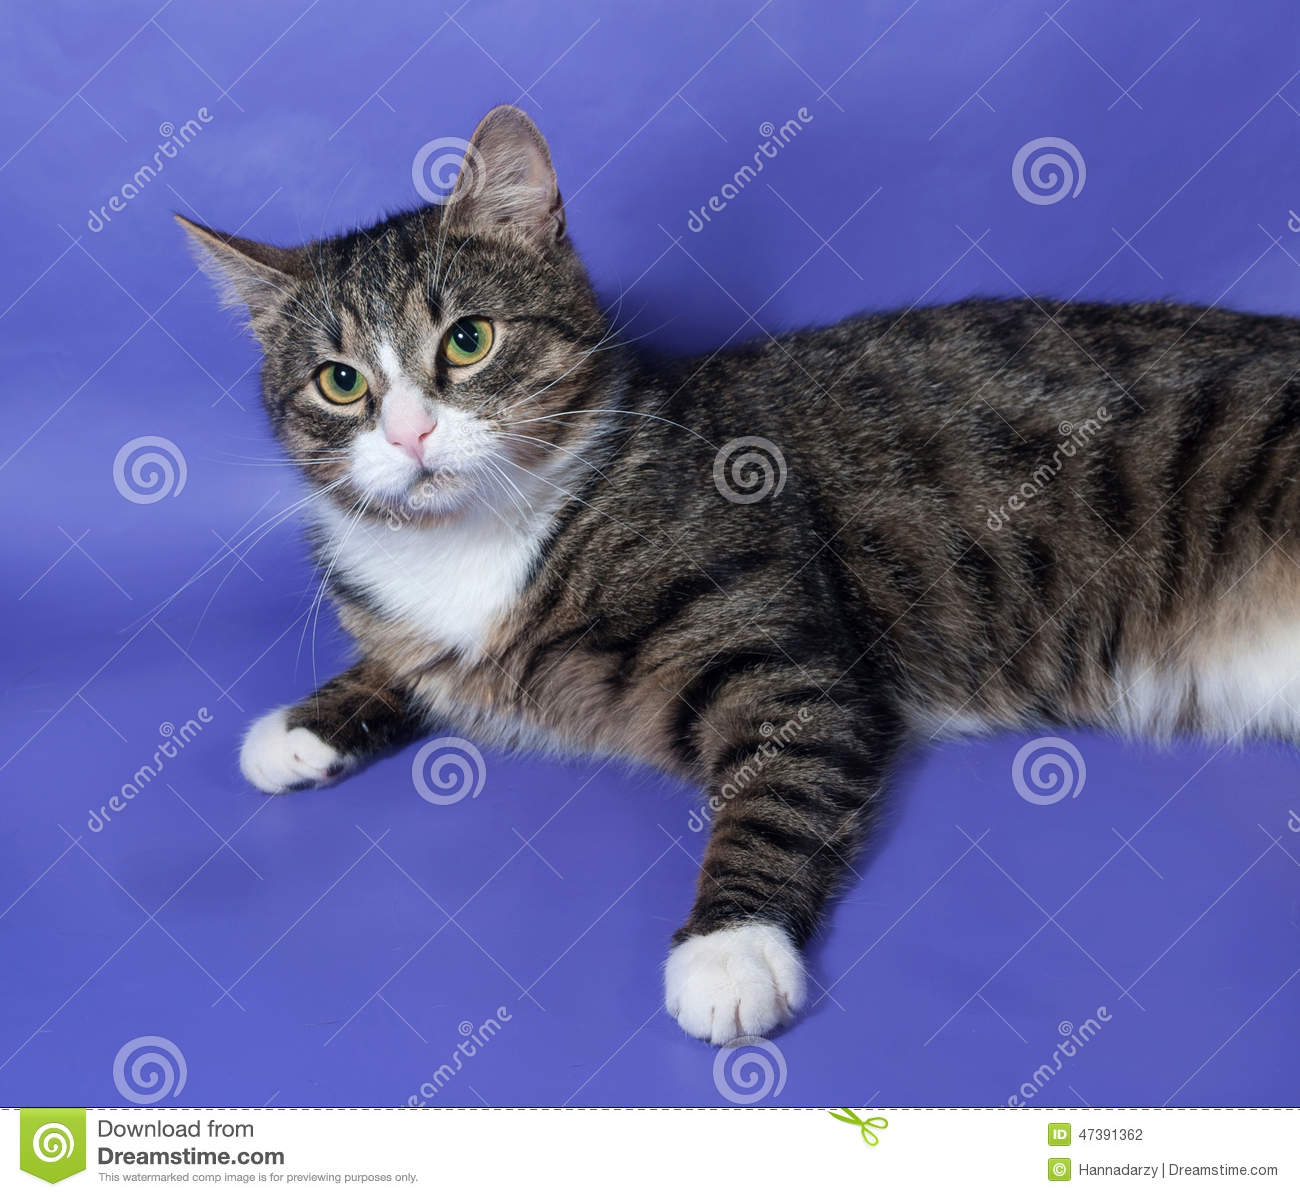 84e5ee1e9d White And Striped Spotted Cat Lying On Blue Stock Photo - Image of ...